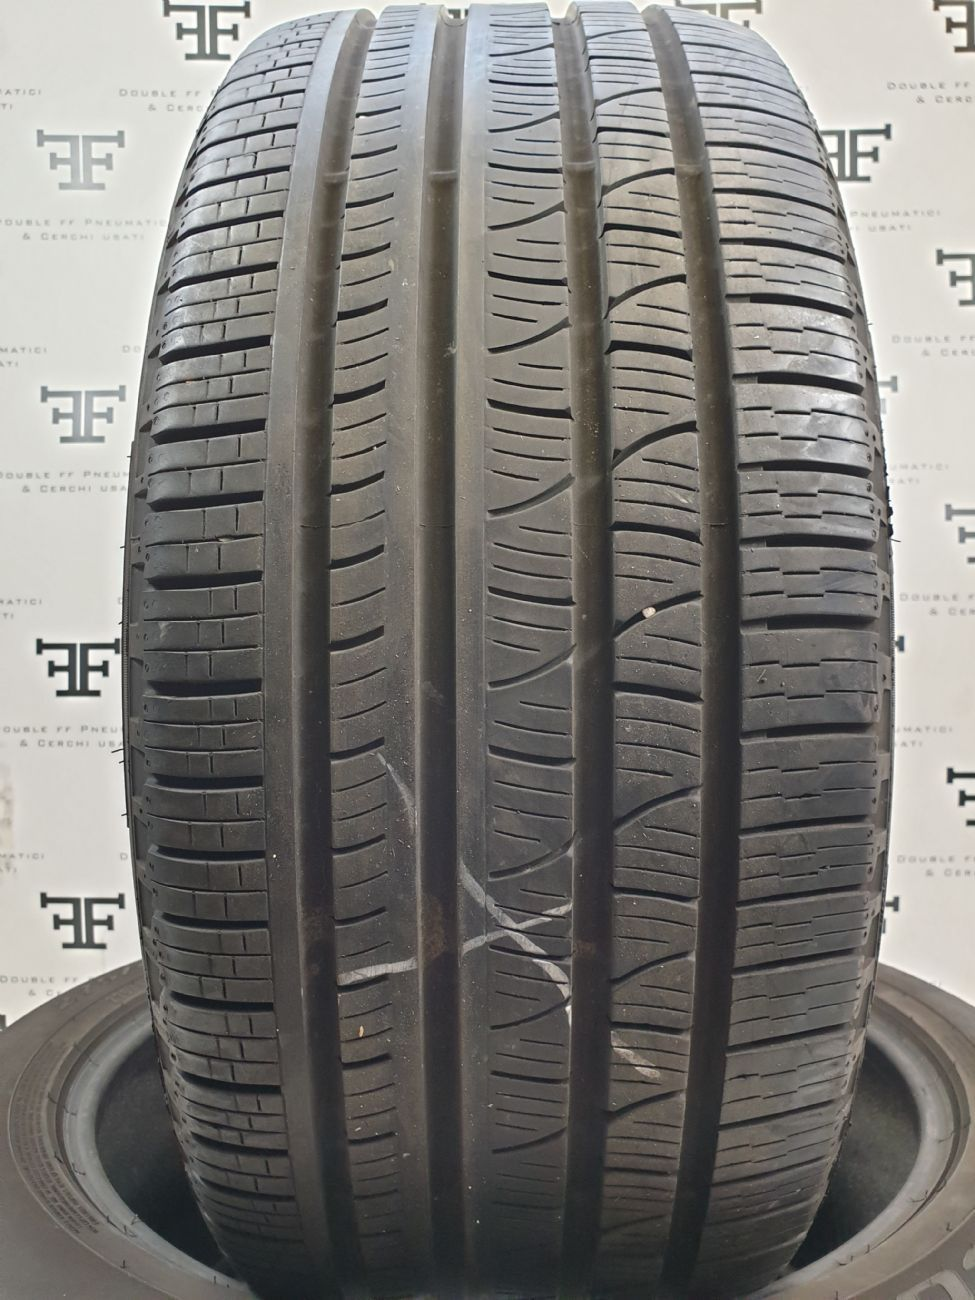 Pneumatici 255 55 R20 110 Y PIRELLI SCORPION VERDE ALL SEAS 4 seasons usati 210€